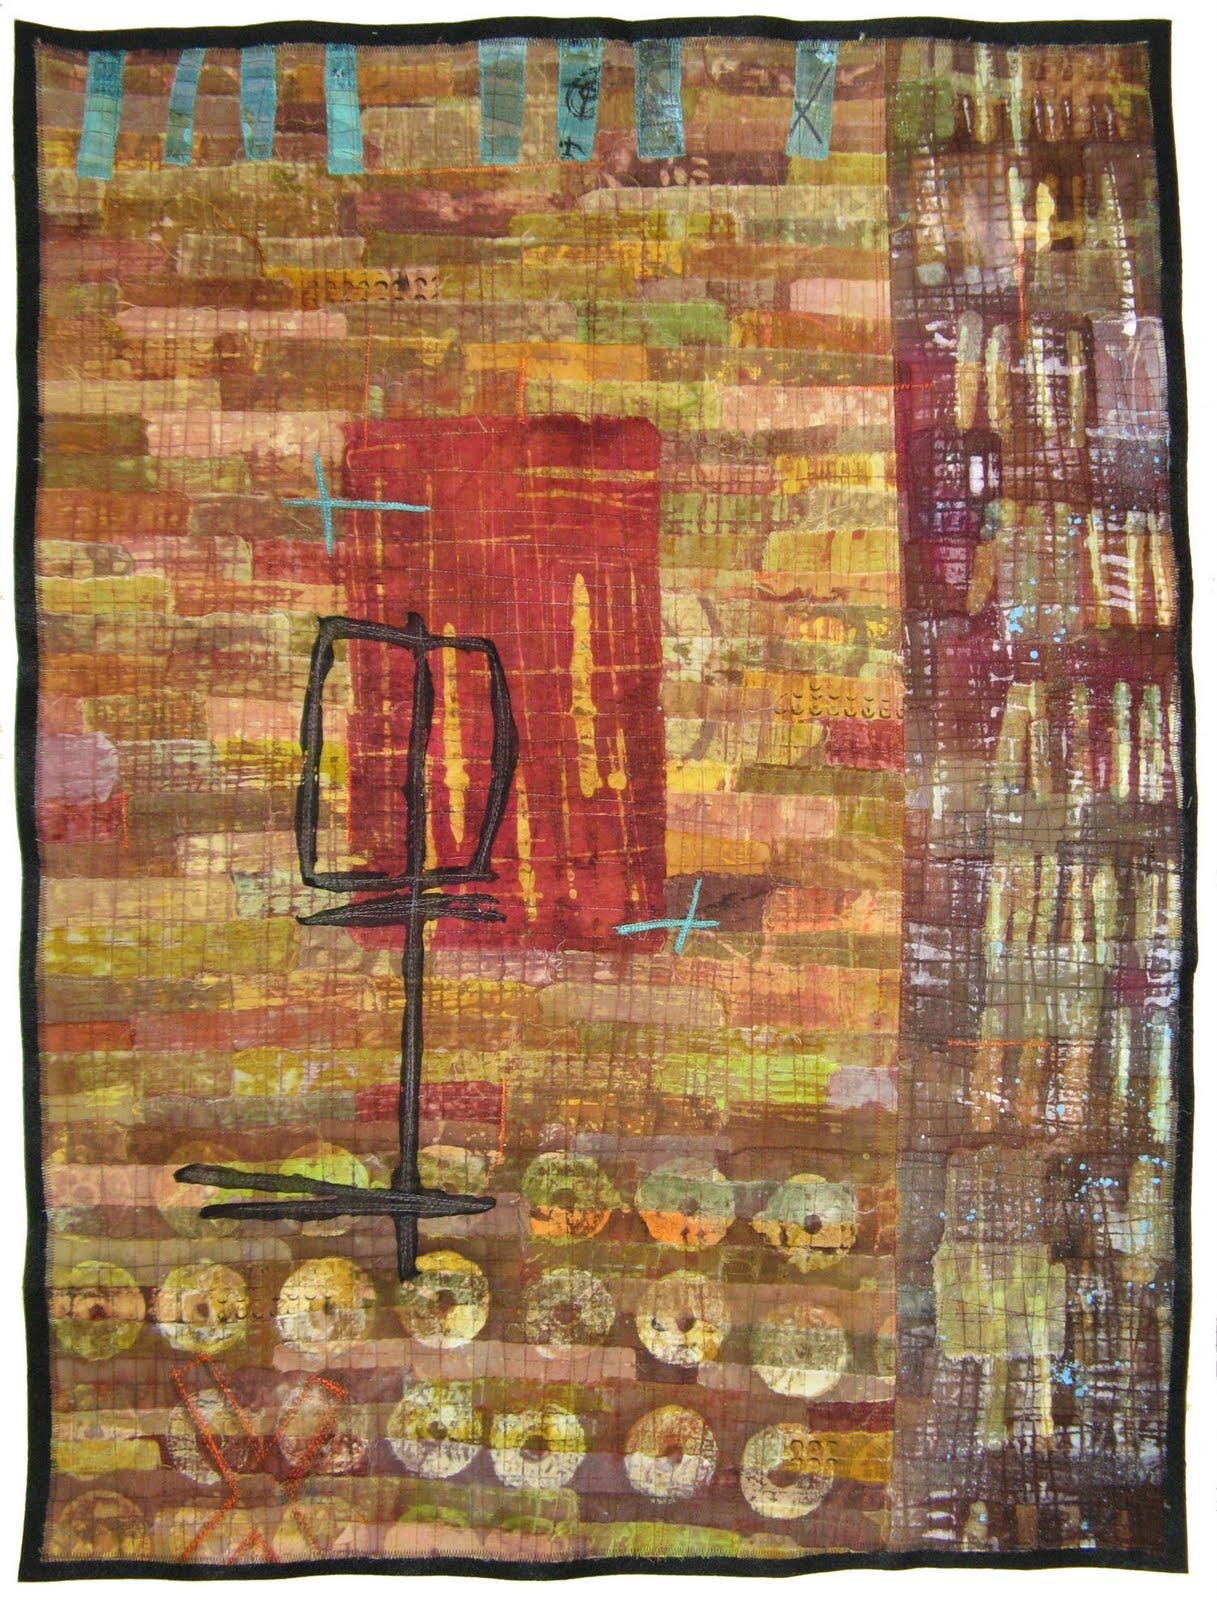 Saqa ohio jennifer solon and anne french exhibit in fiber for Art and craft shows in ohio